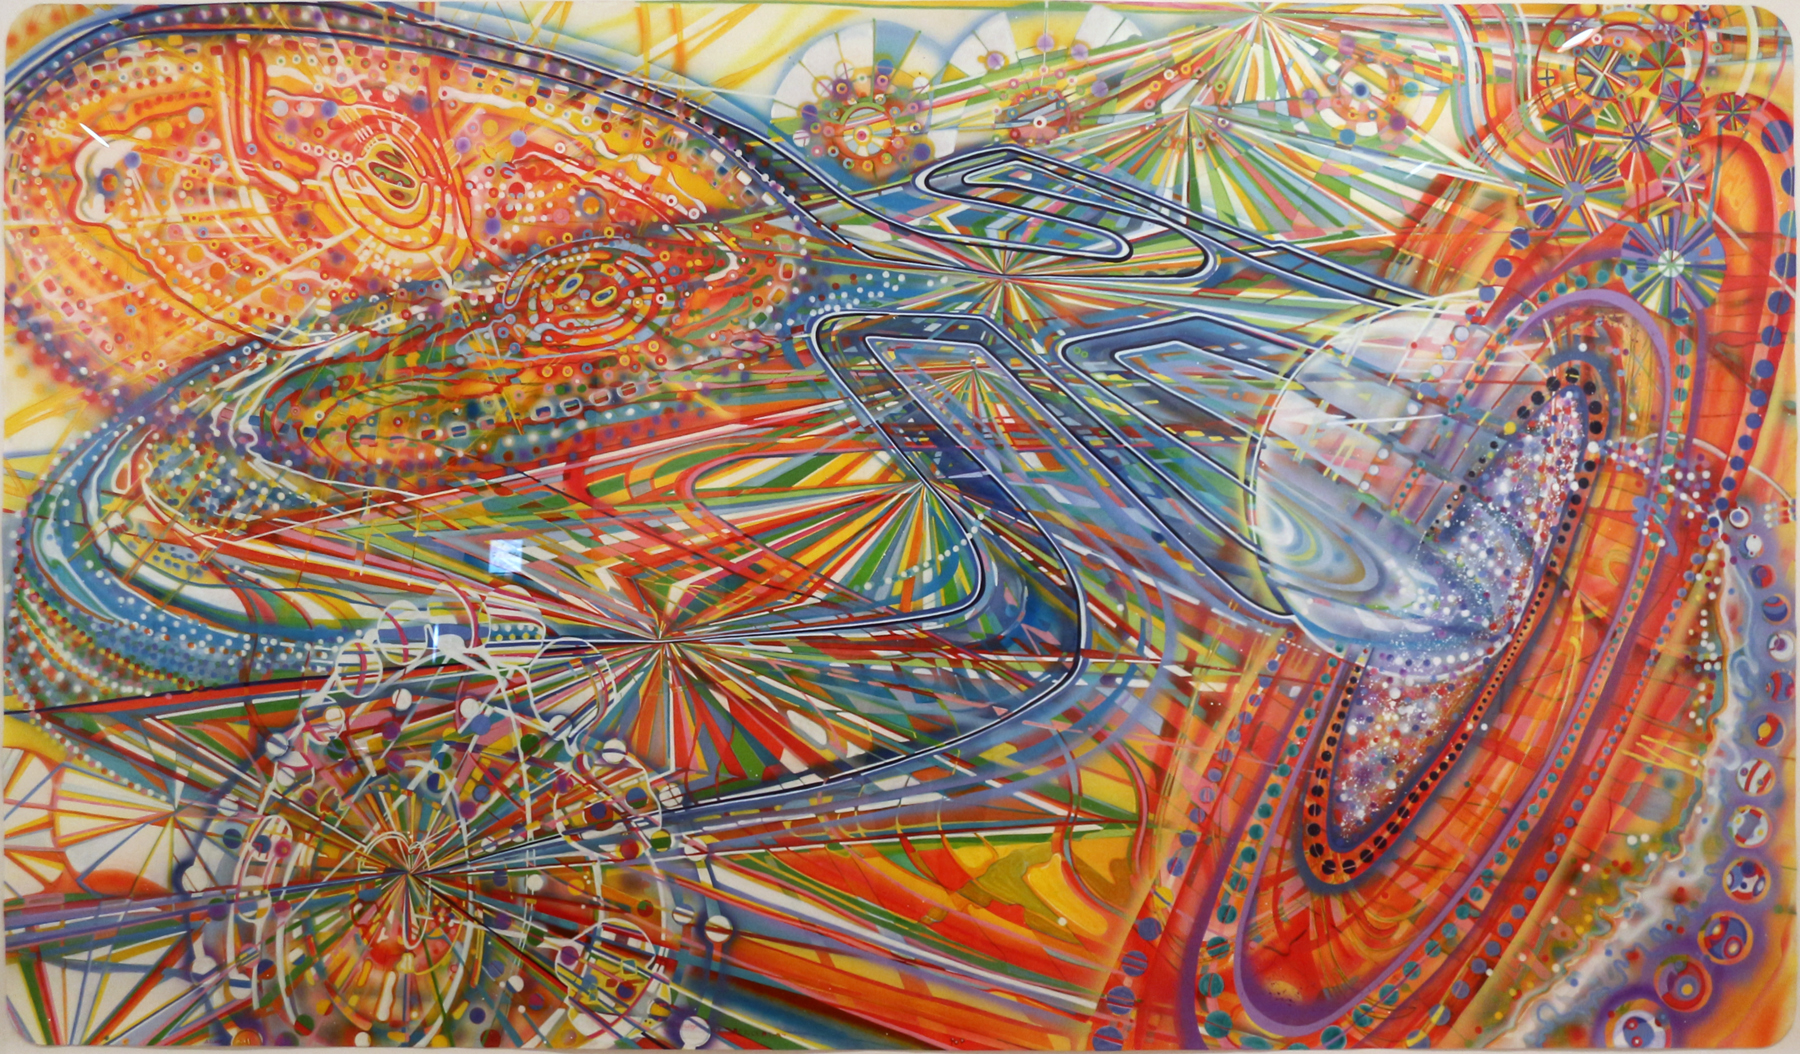 Ati Maier   Possibility of Perception,  2011 ink and airbrush on paper 52 x 94 inches